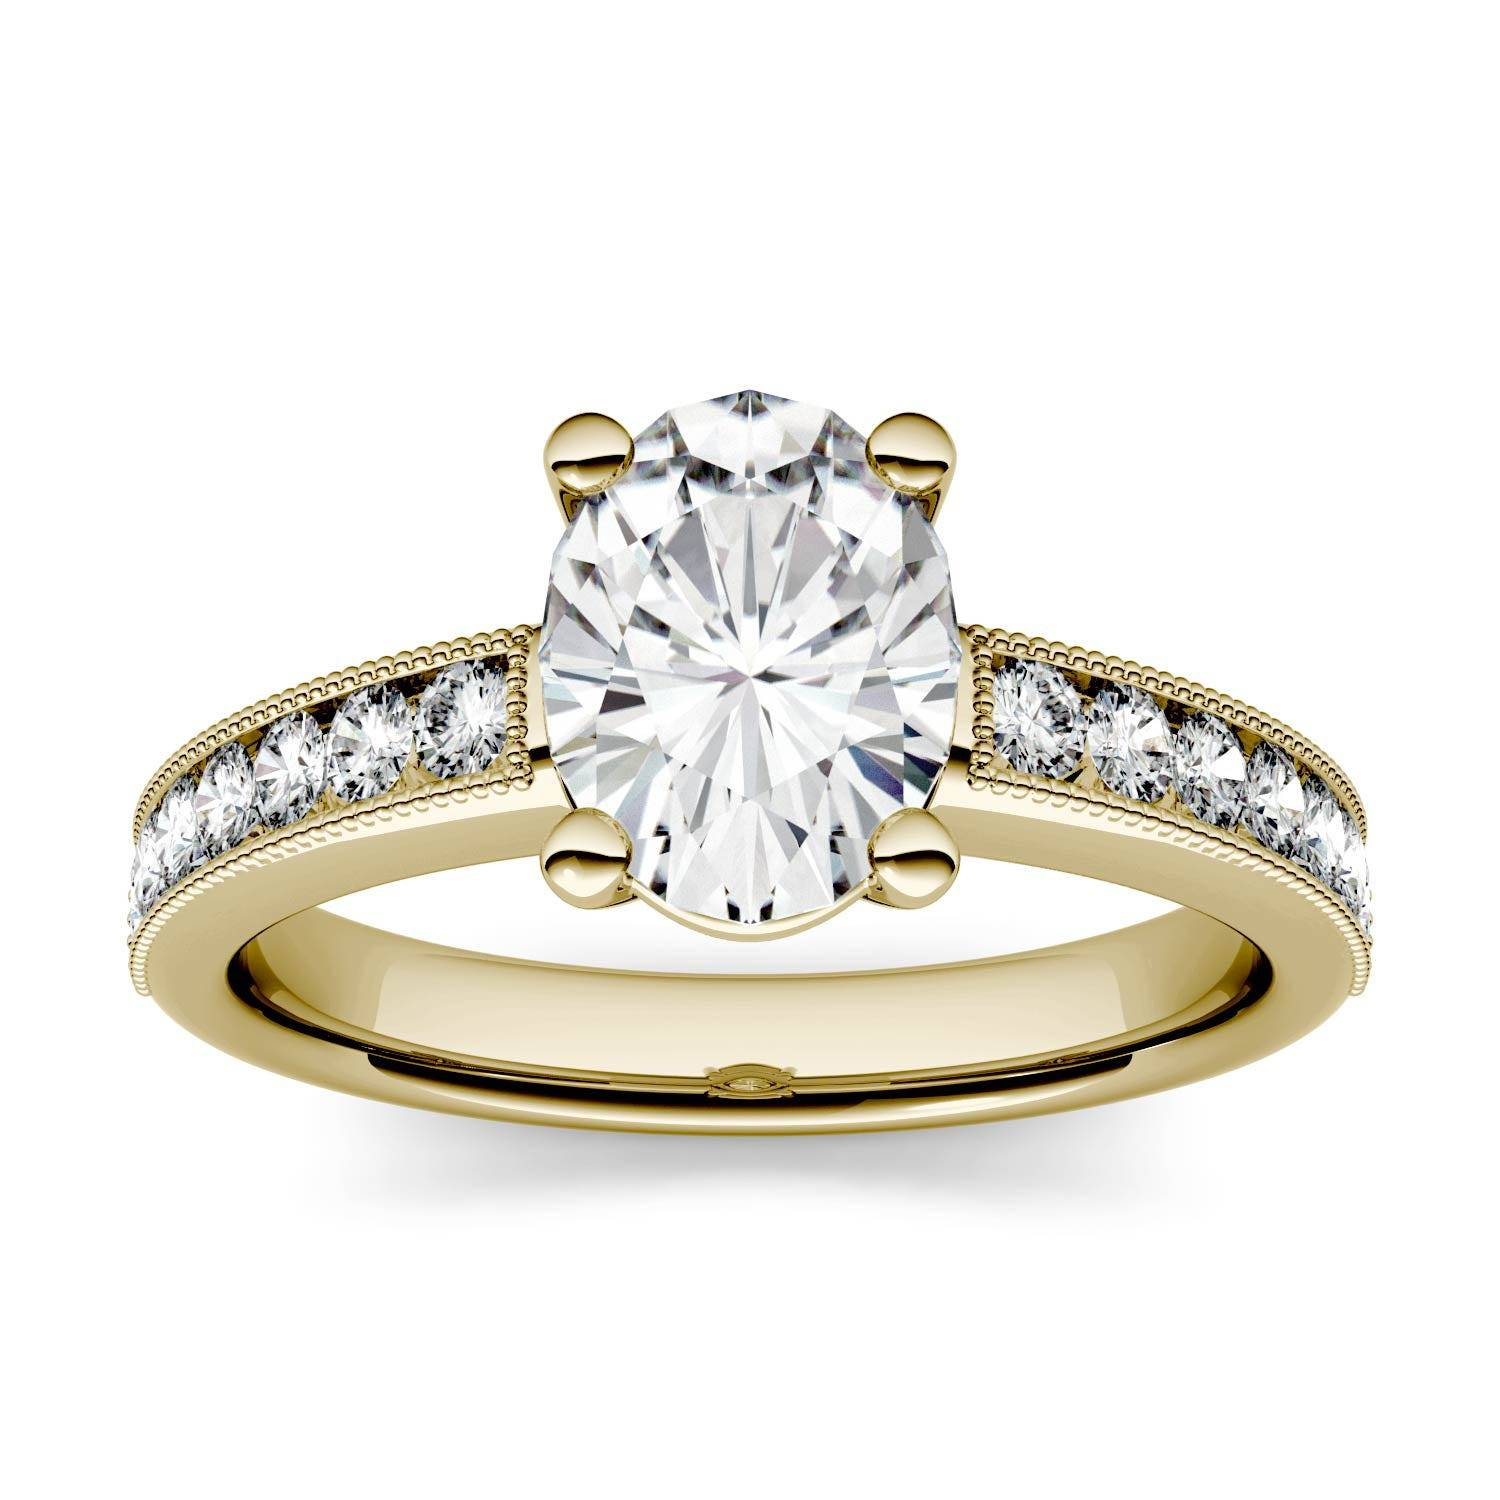 Charles & Colvard Solitaire with Milgrain Side Accents Engagement Ring in 14K Yellow Gold, Size: 7, 1.32CTW Oval Forever One - Colorless Moissanite Charles & Colvard  - Yellow Gold - Size: 7